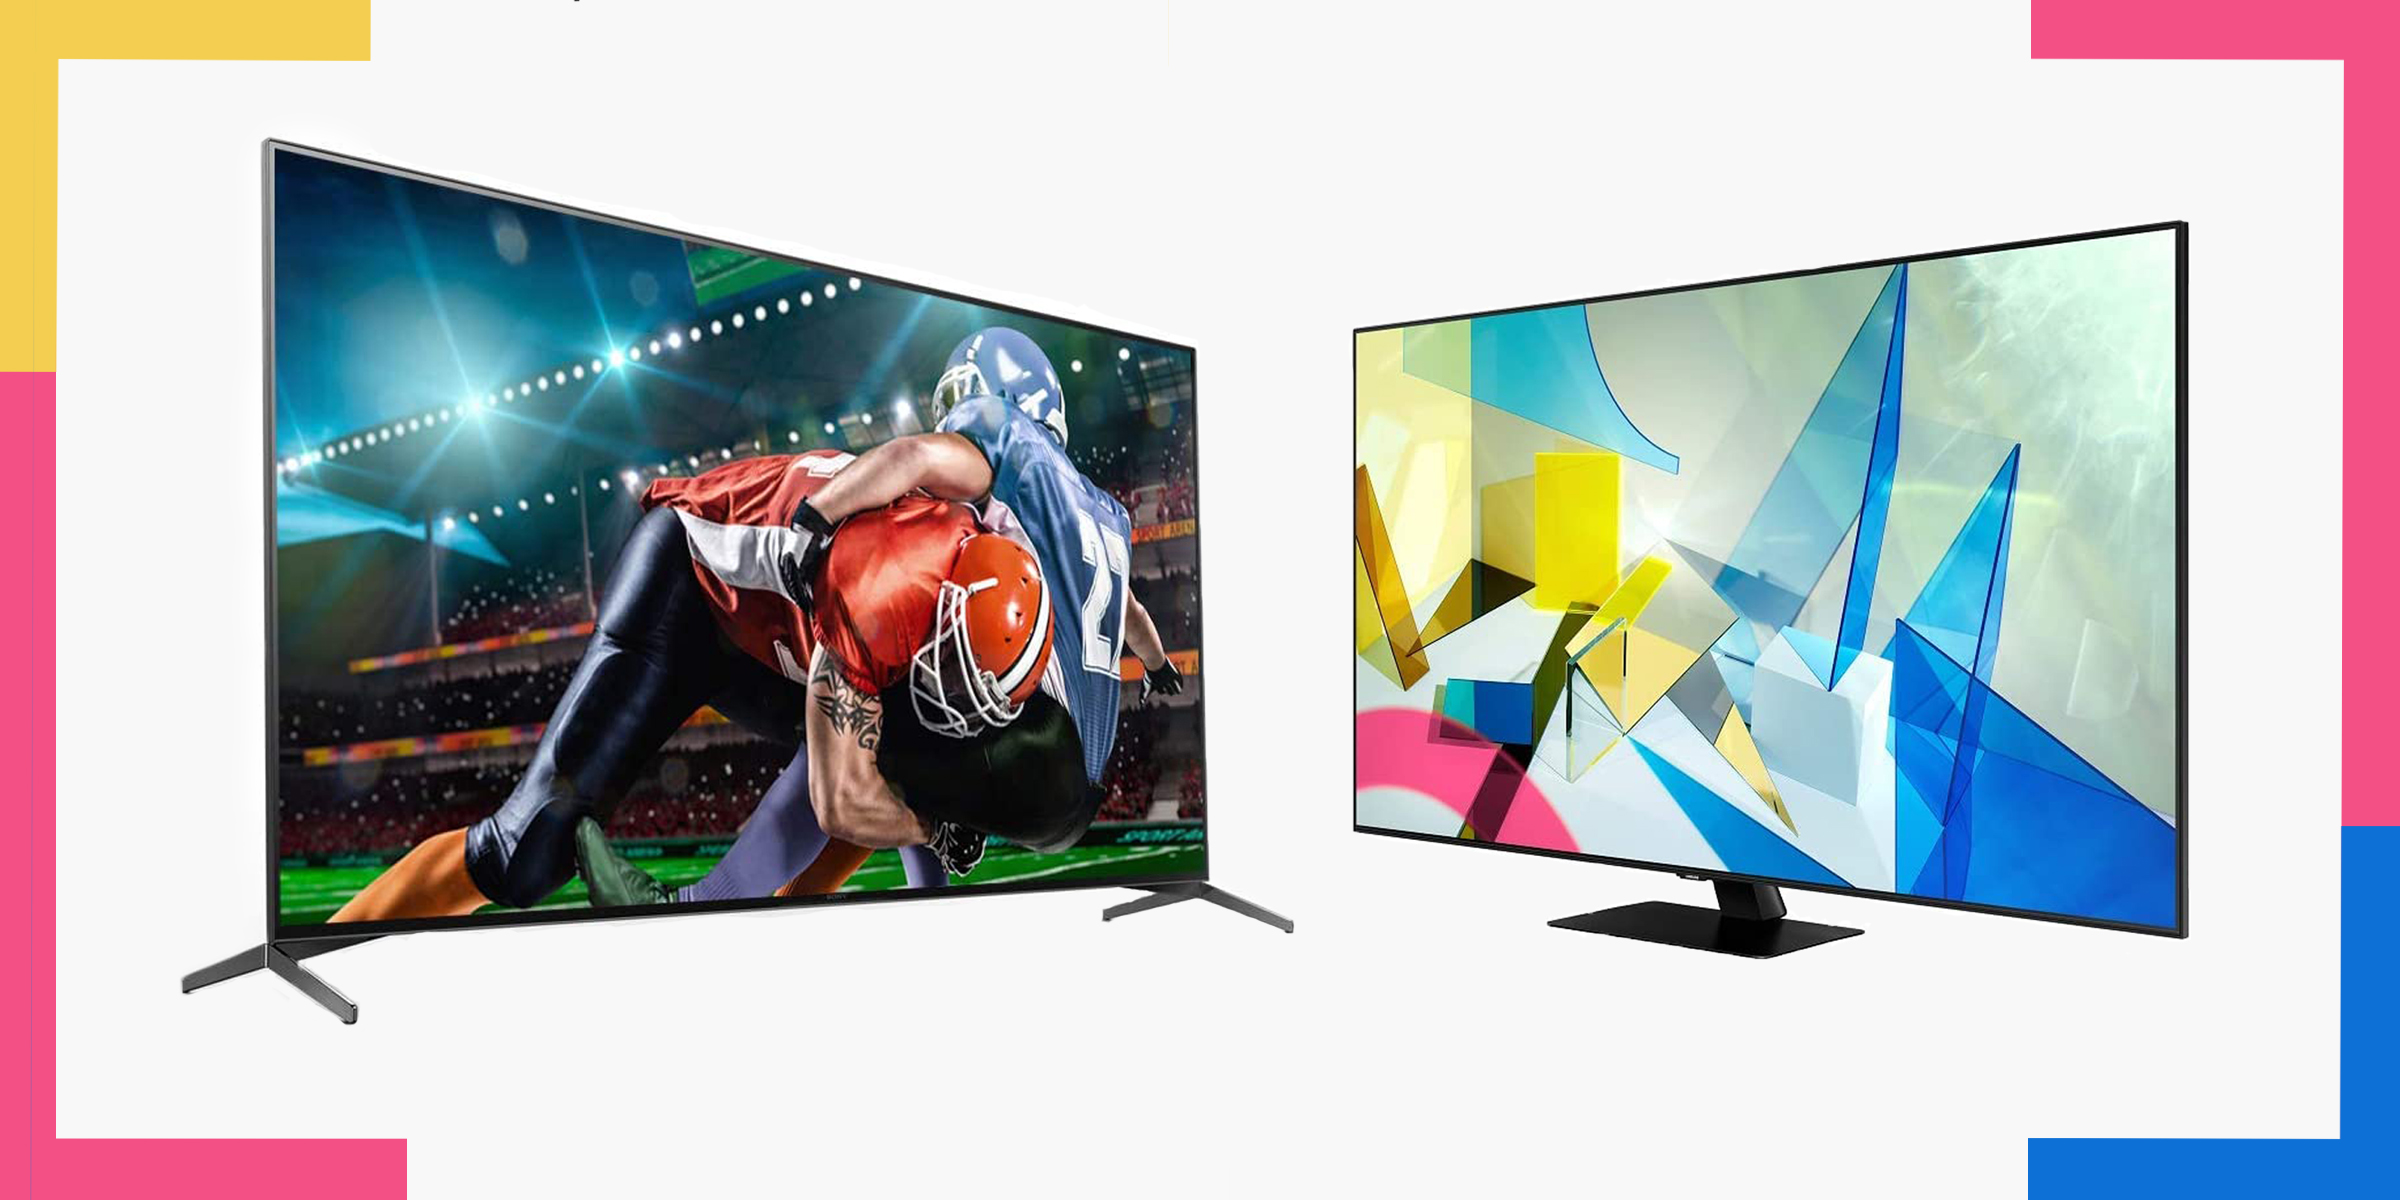 Best Tvs 2021 A Buying Guide To Help You Find The Best Tv